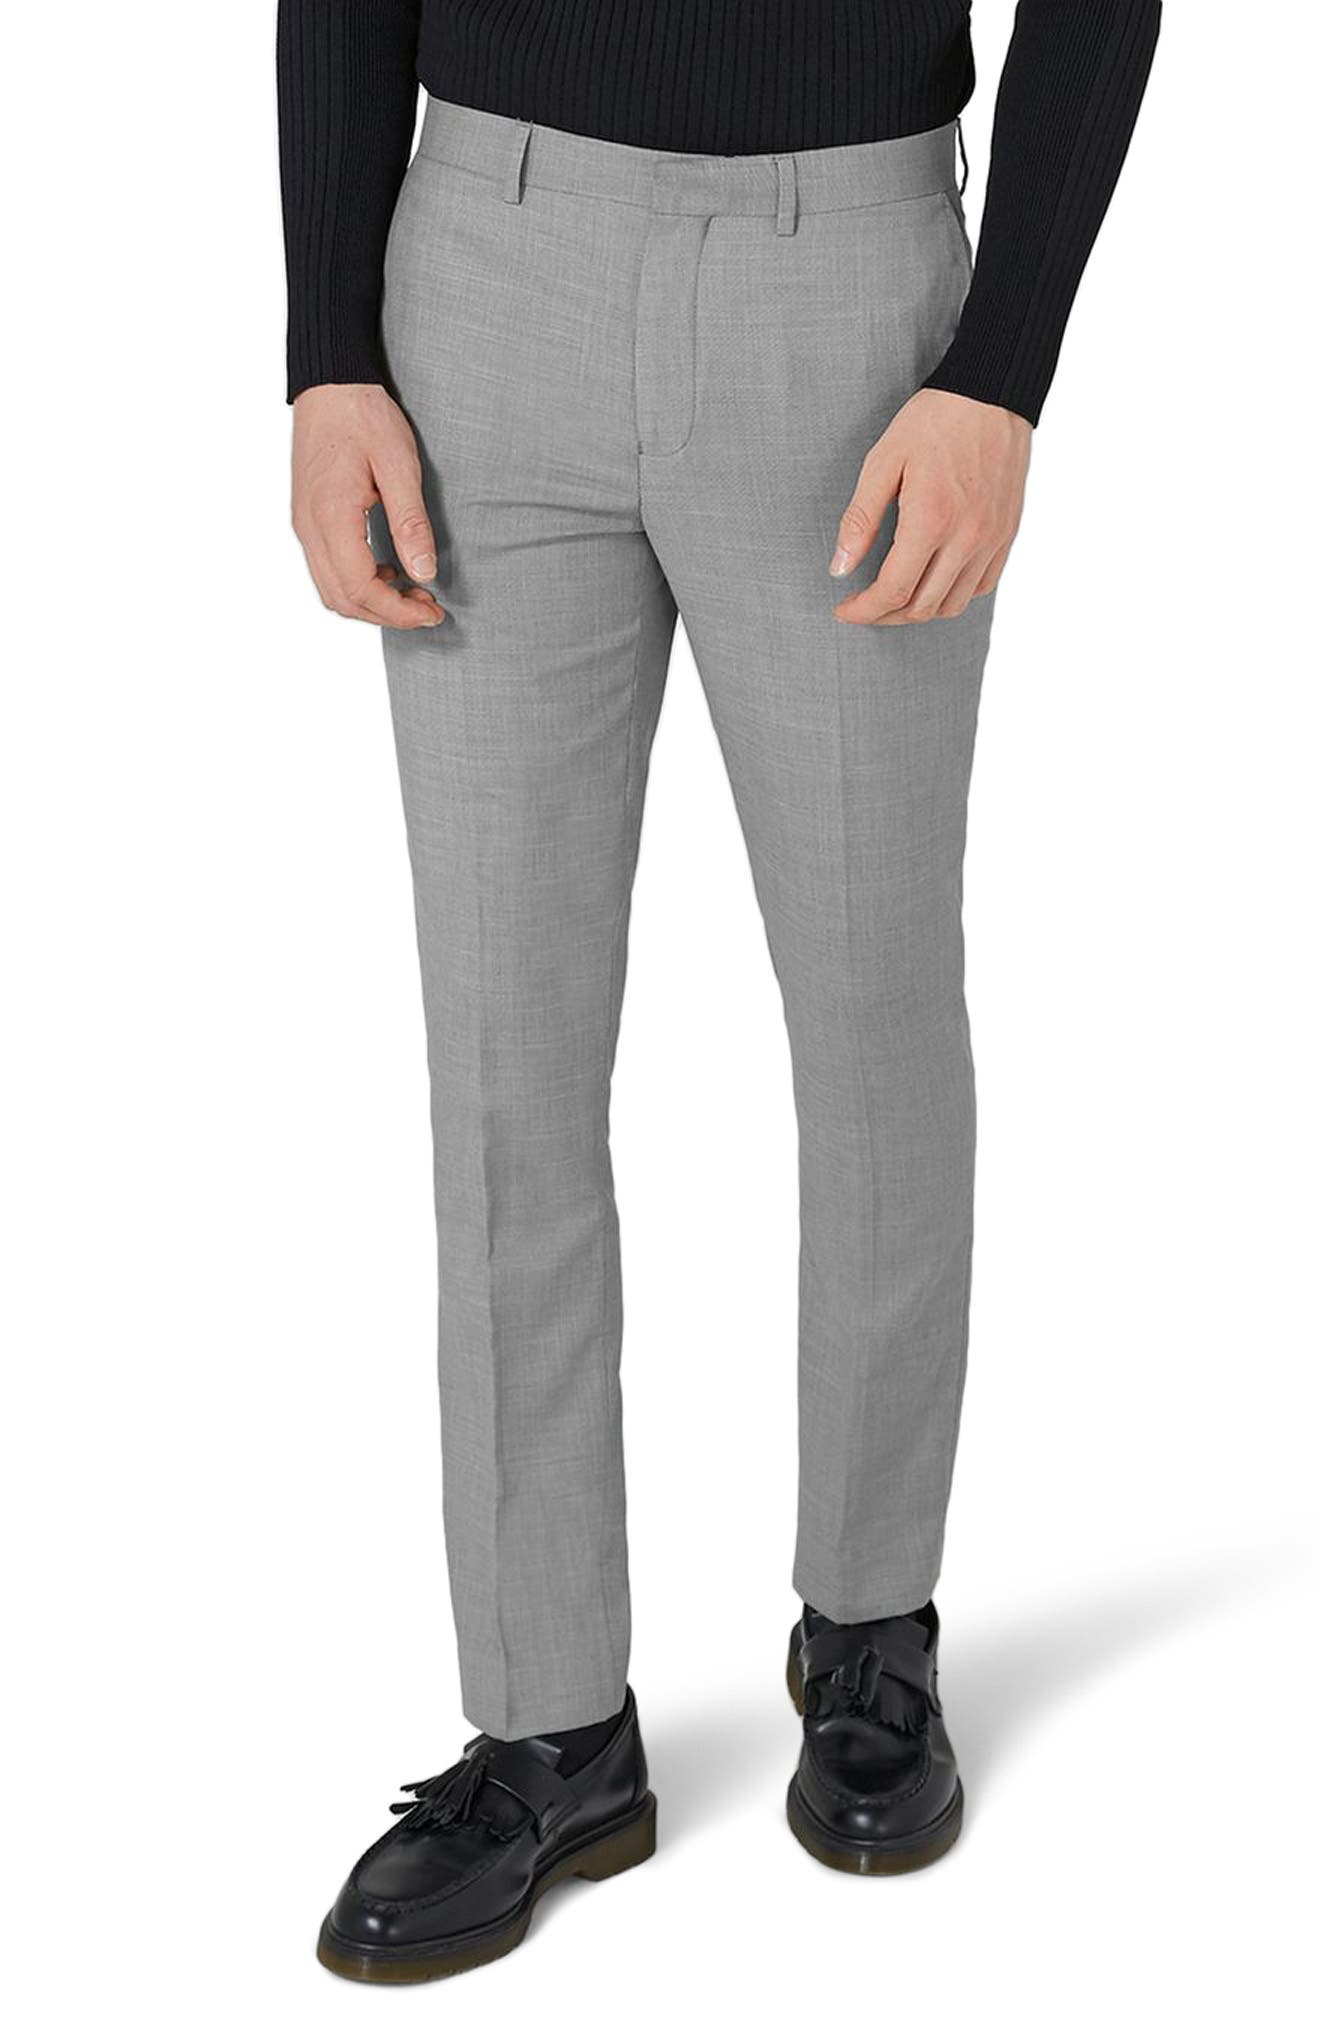 Topman Como Skinny Fit Grey Suit Pants